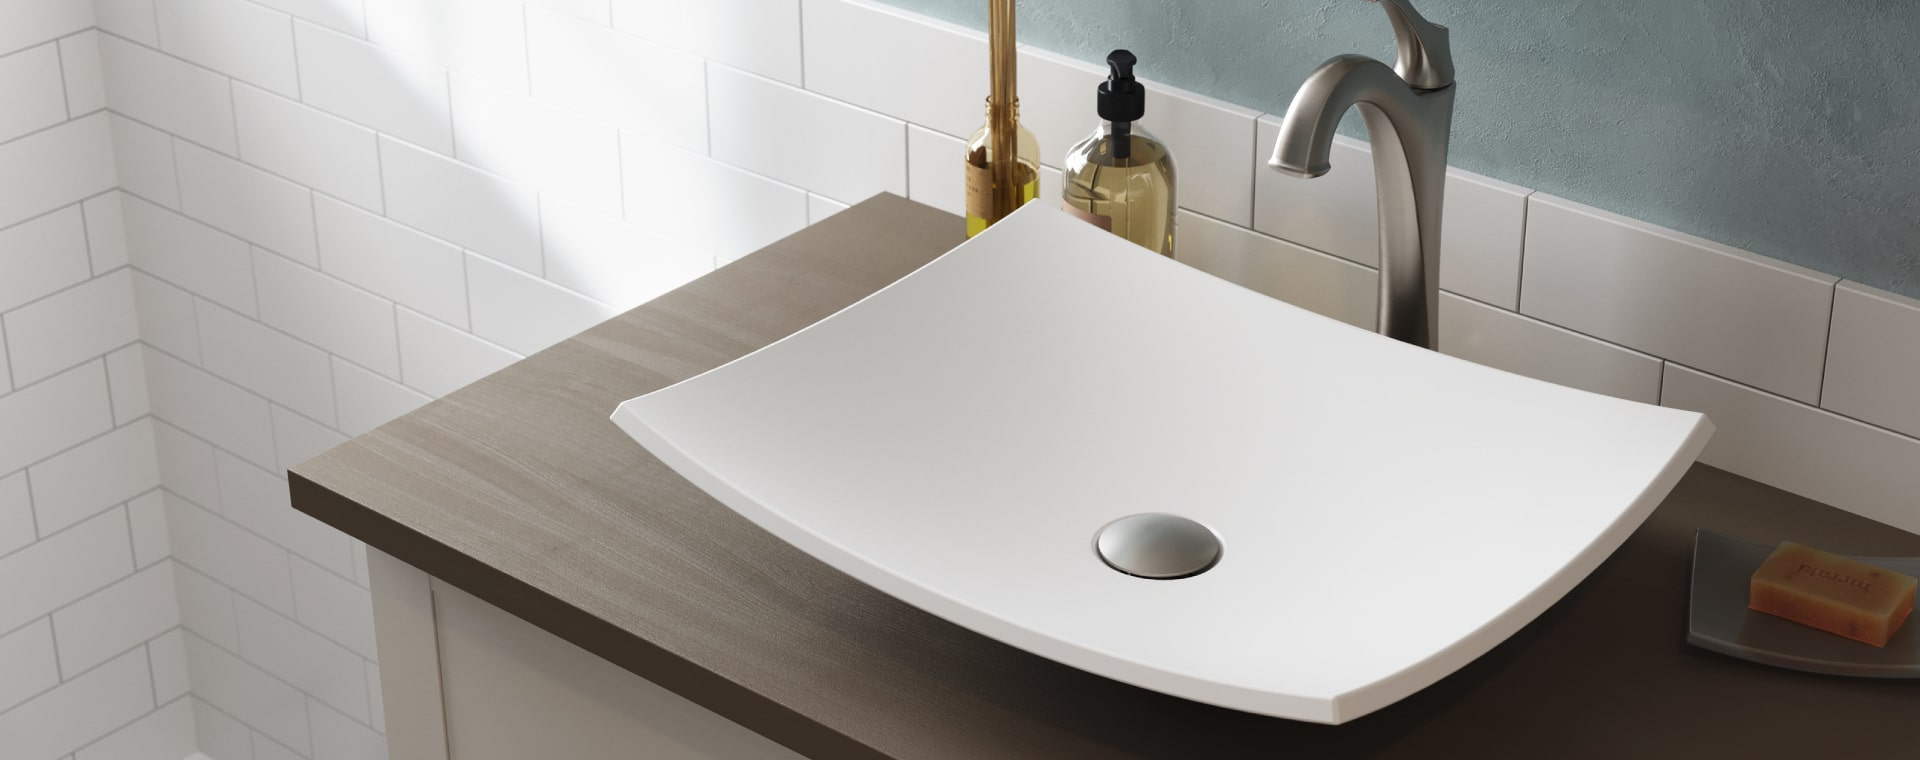 choosing the stylish vessel sinks for modern bathrooms